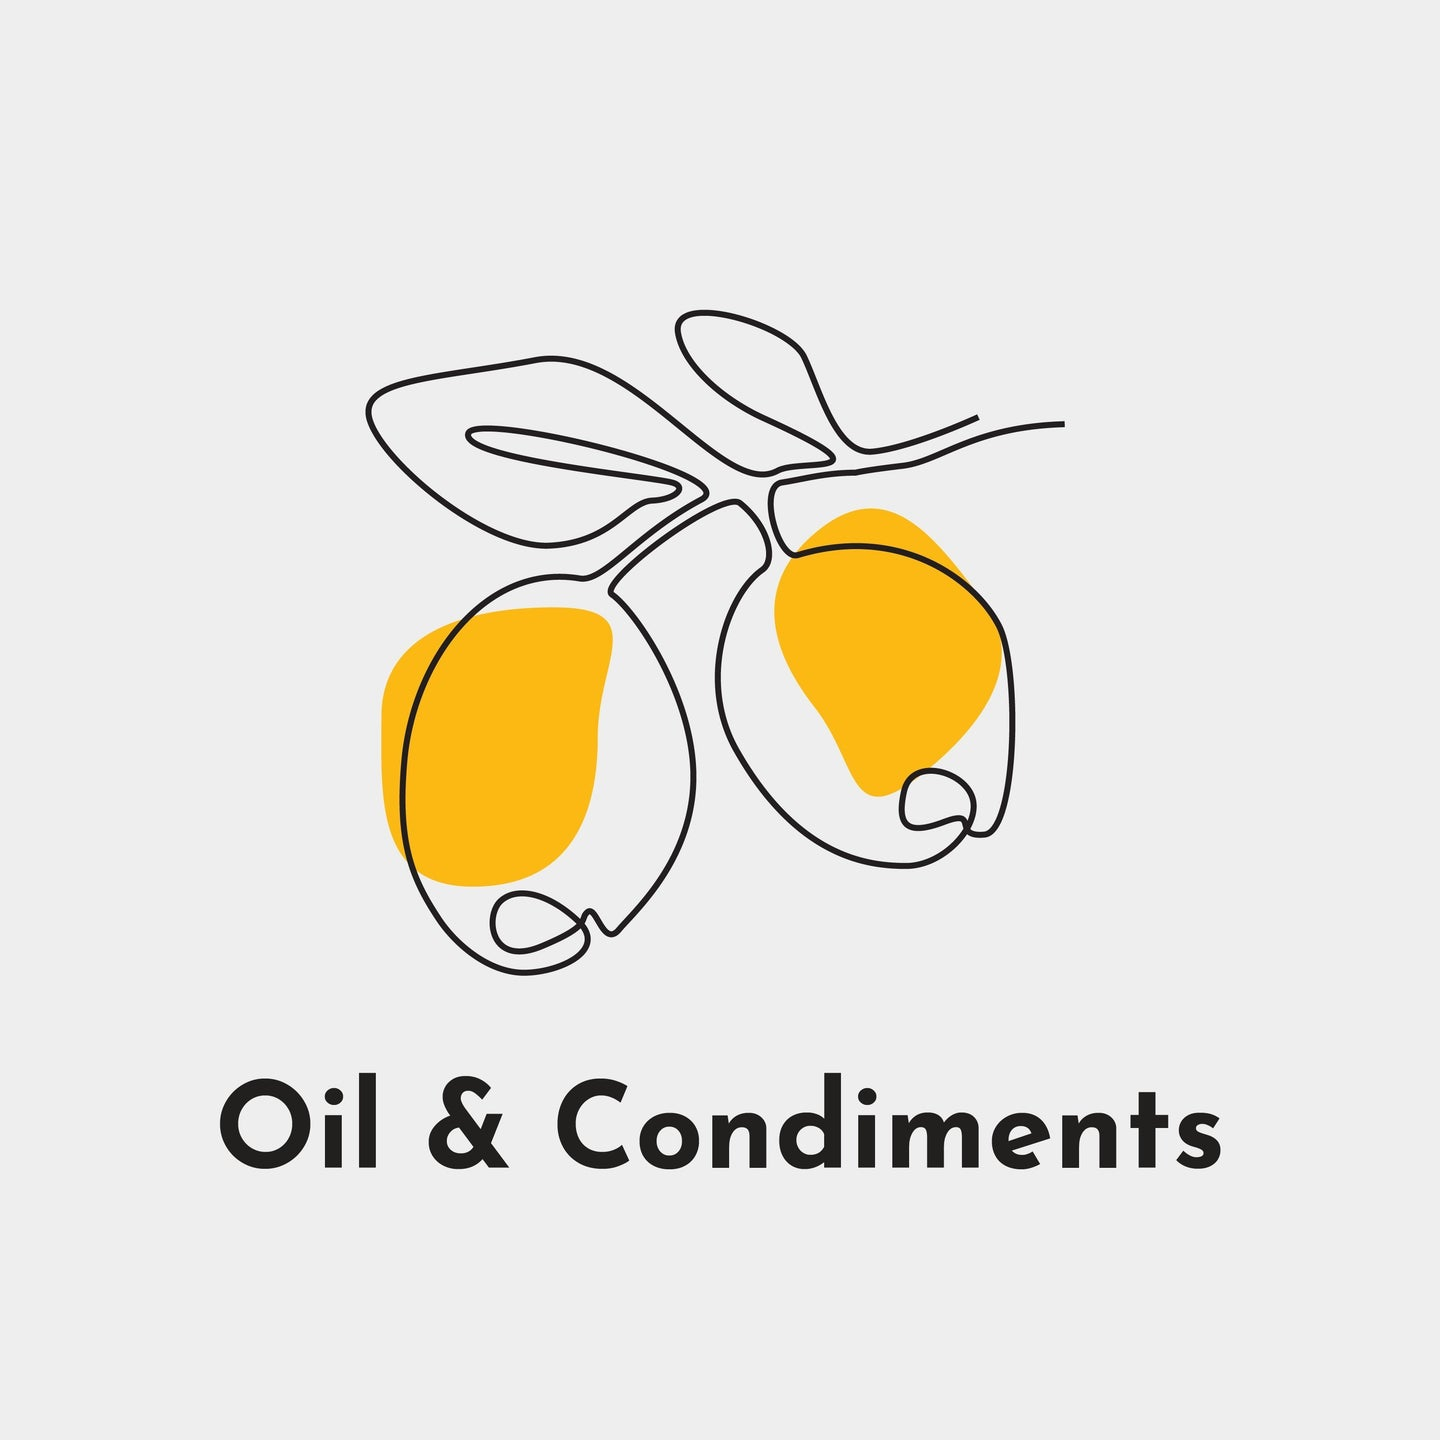 Oils and Condiments | vvjustitalian